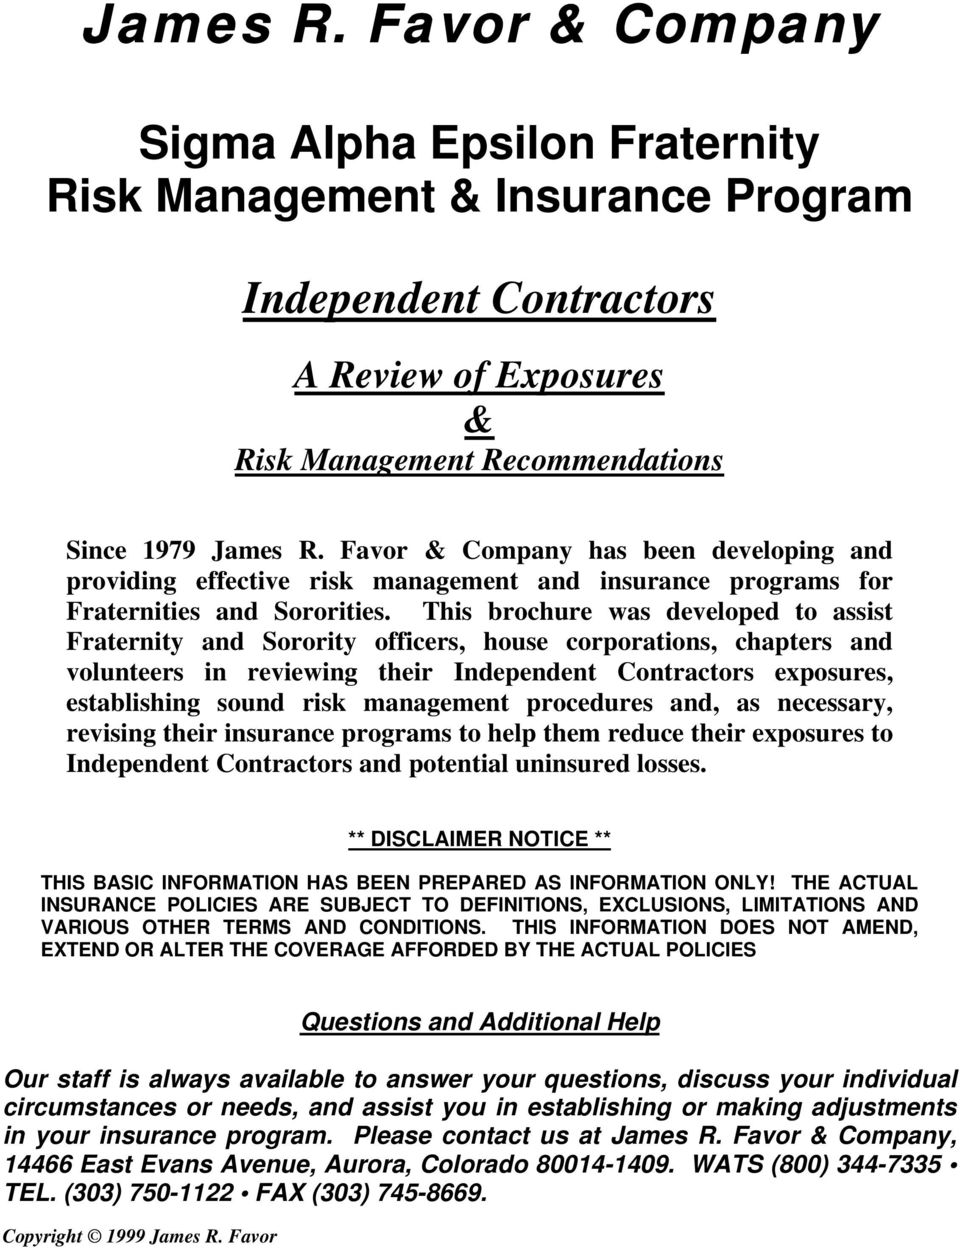 This brochure was developed to assist Fraternity and Sorority officers, house corporations, chapters and volunteers in reviewing their Independent Contractors exposures, establishing sound risk